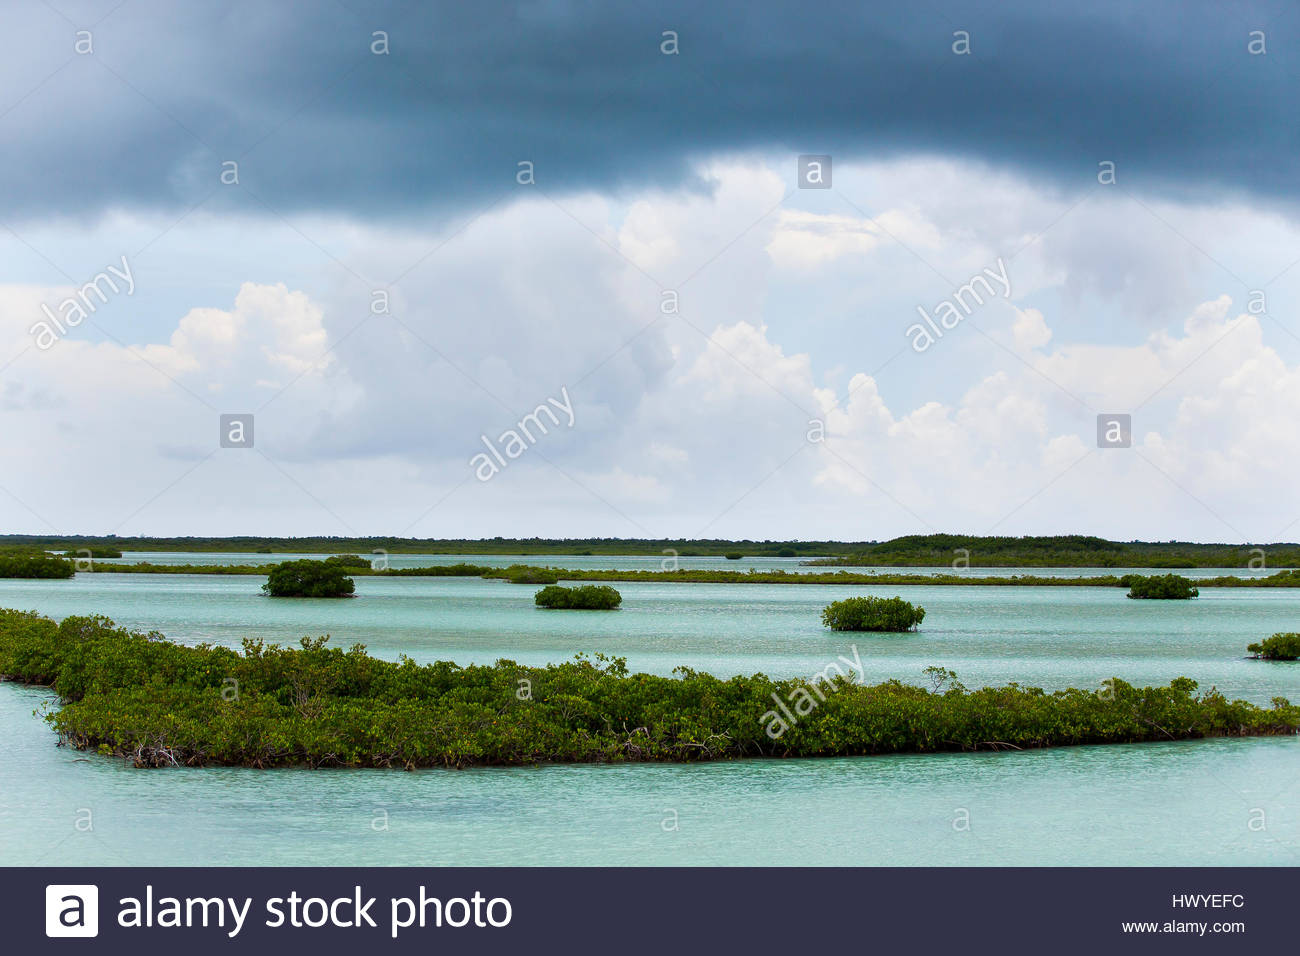 Dark cumulus cloud lines hover above small islands. - Stock Image